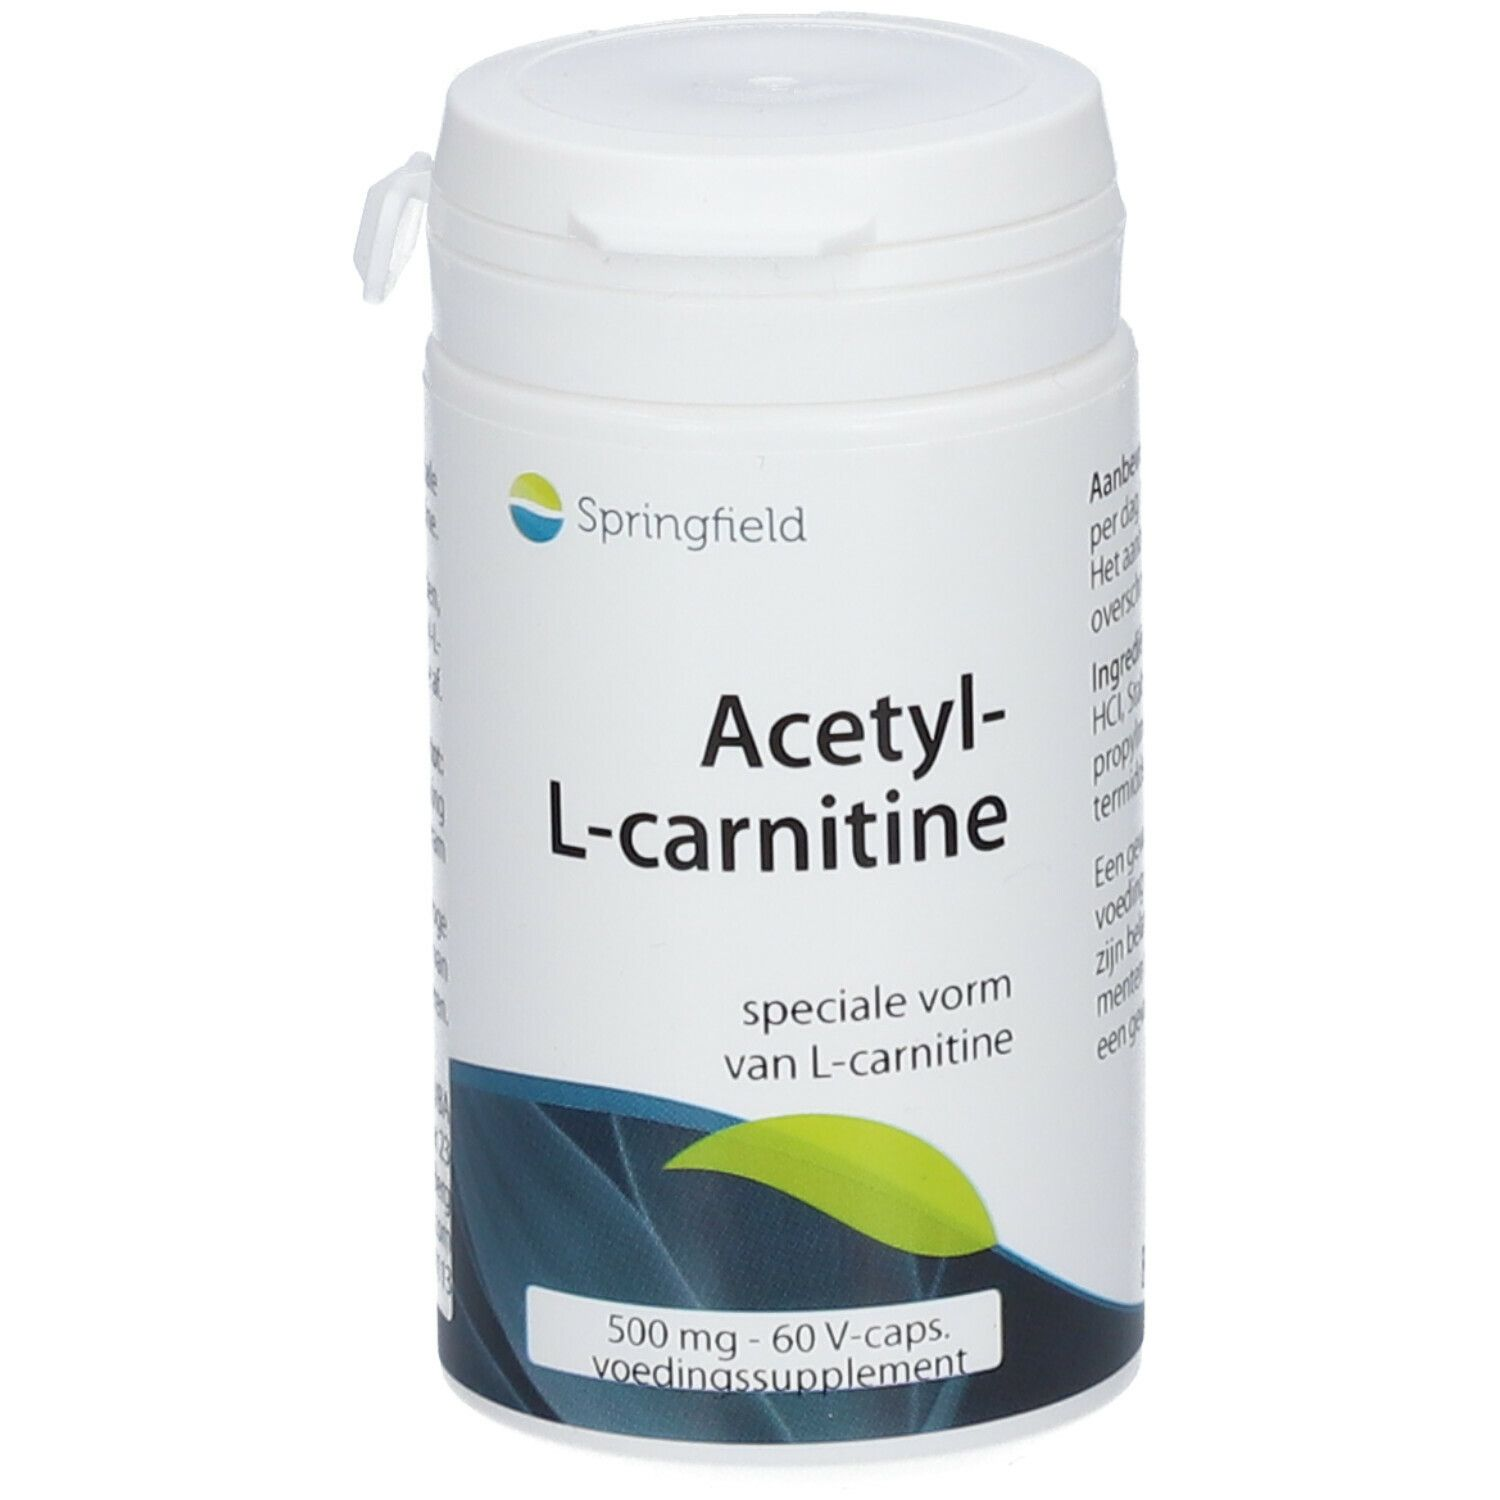 Image of Acetyl-L-carnitine